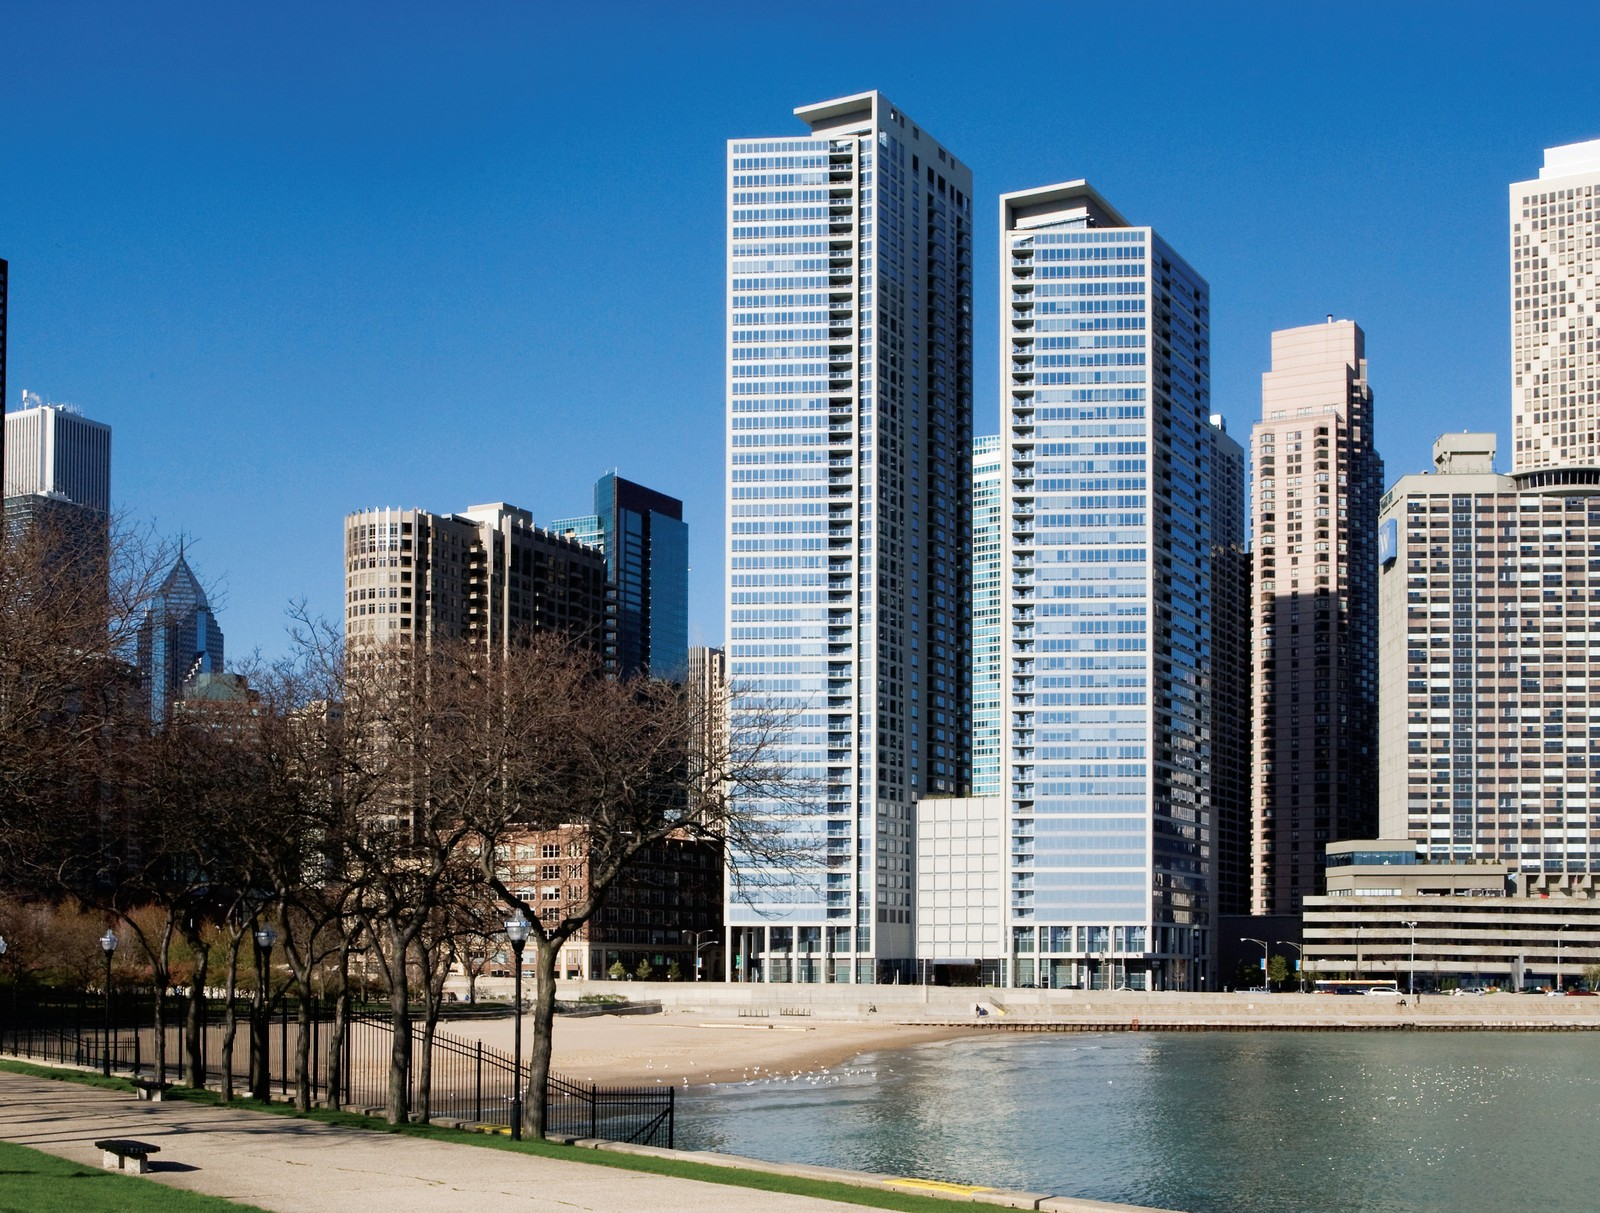 lakeside chicagos lakeshore drive - HD 1600×1213